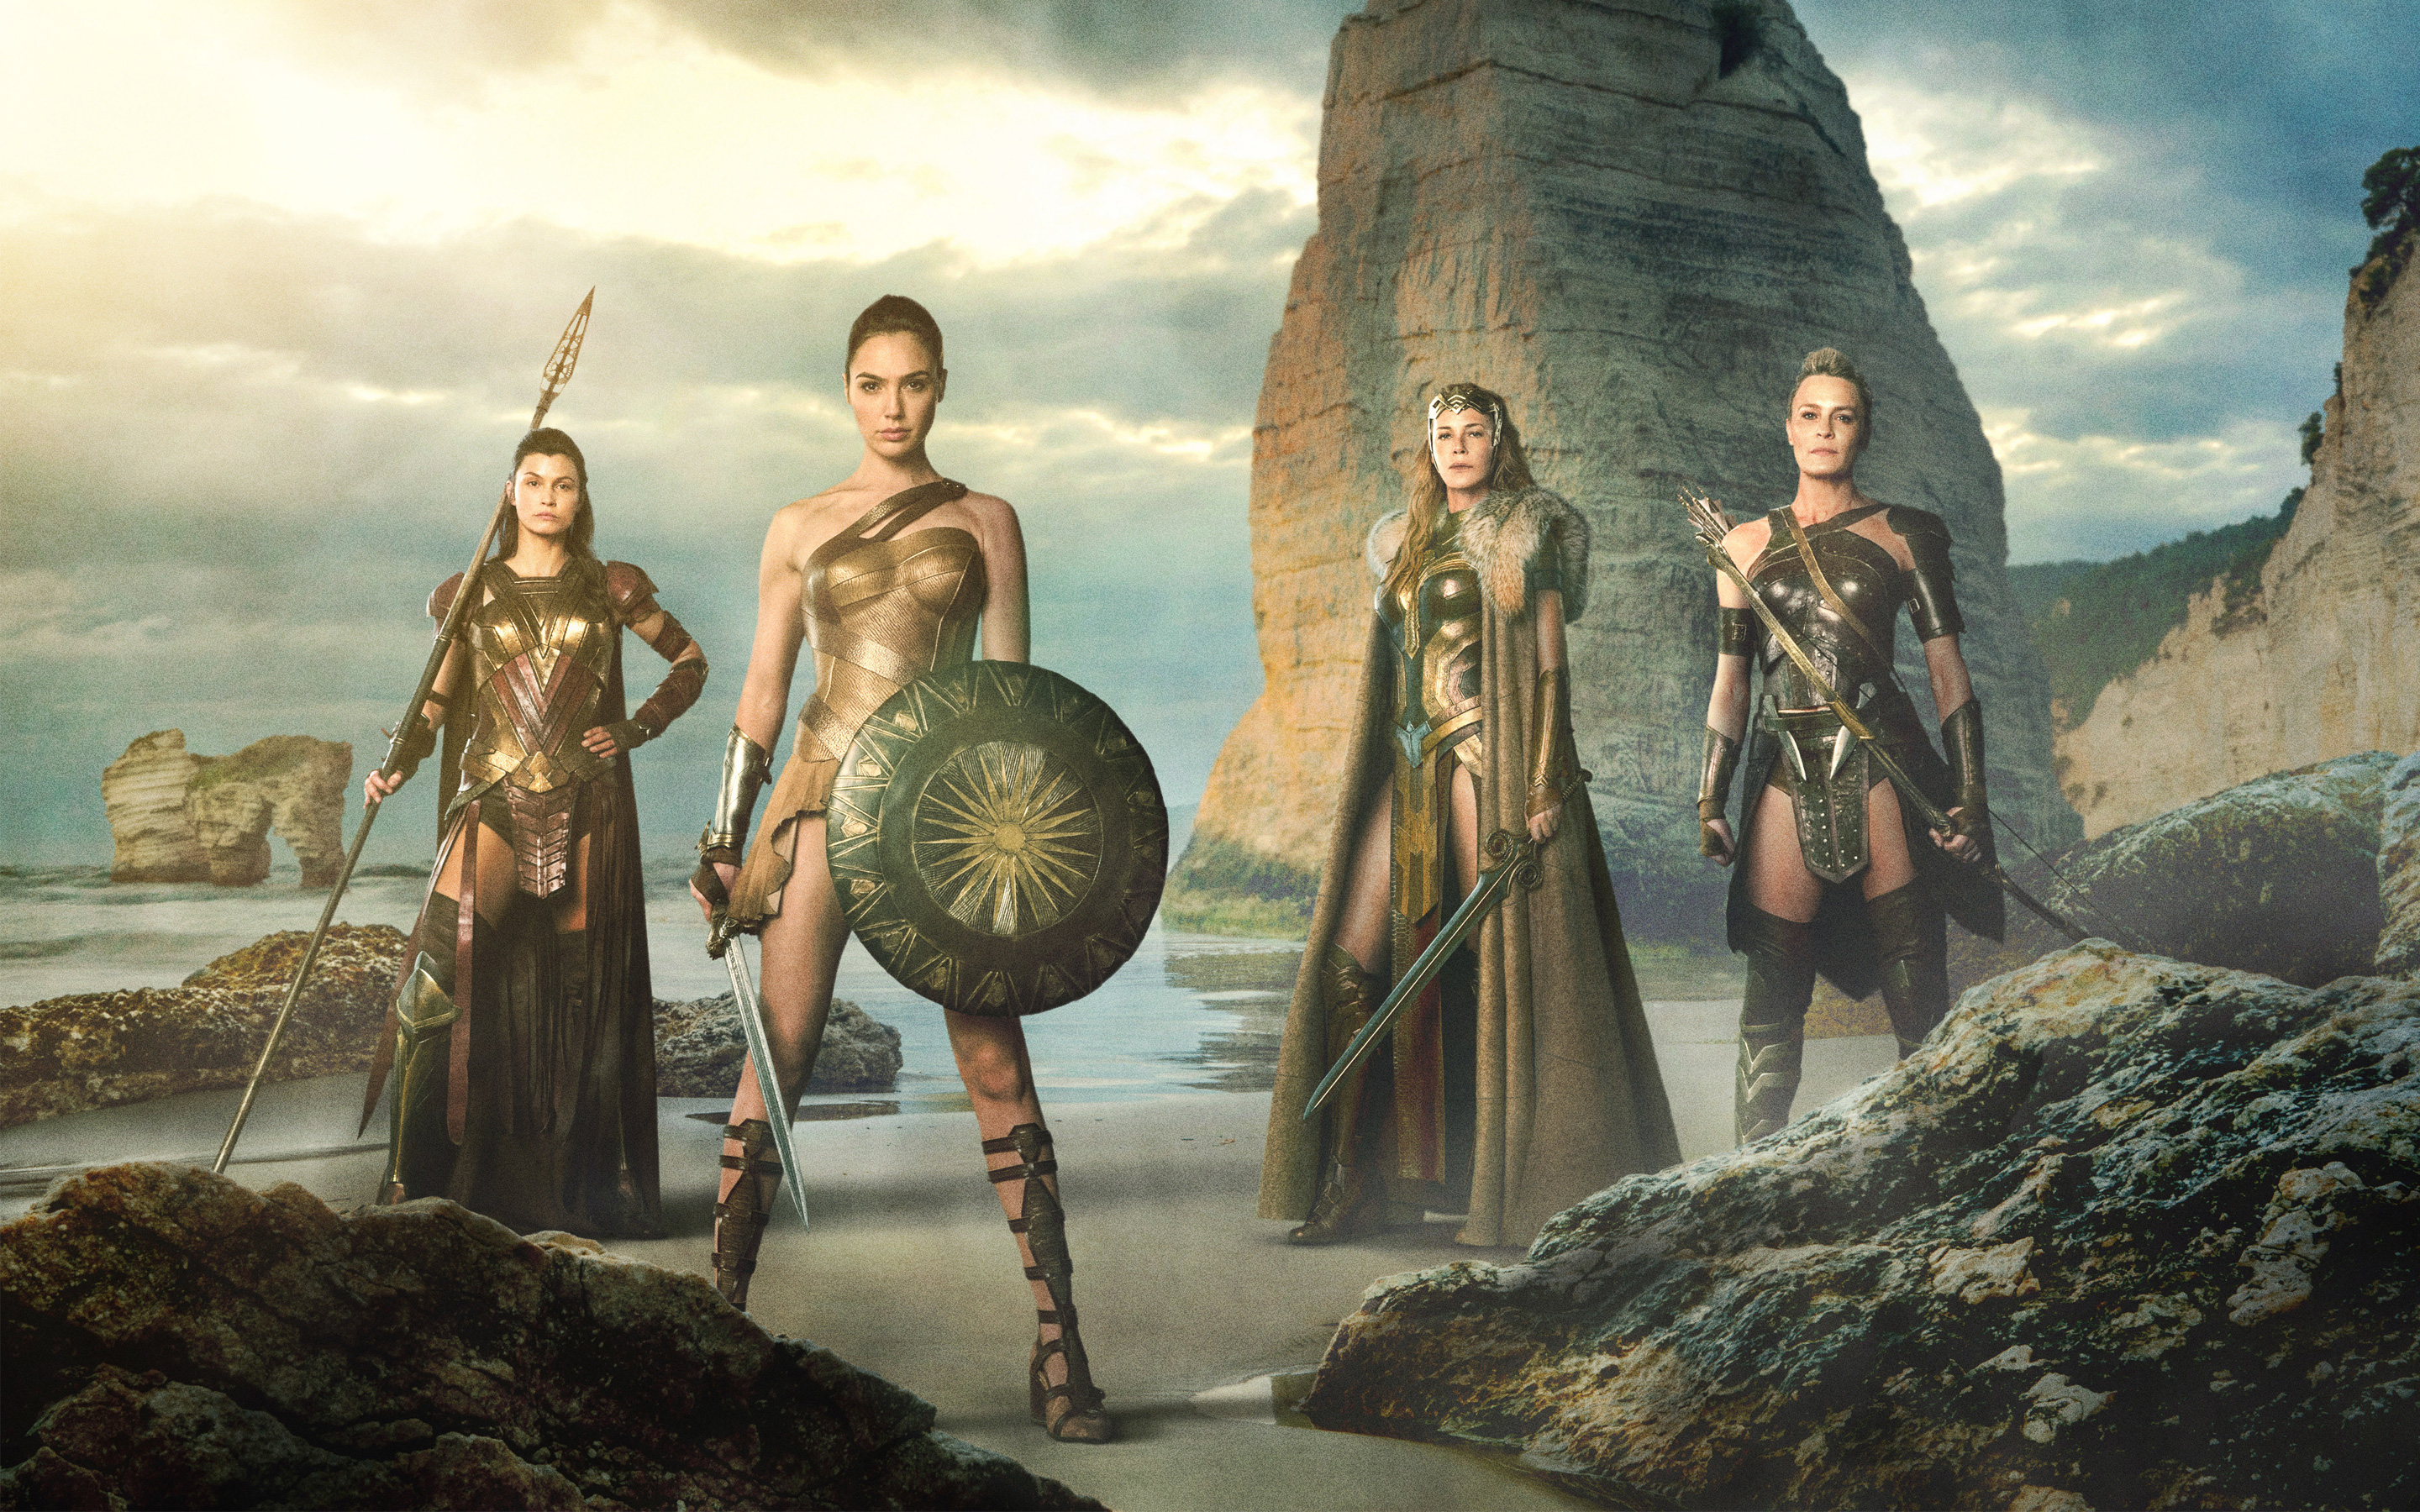 Wonder Woman Director to Produce Spinoff Starring the Amazons